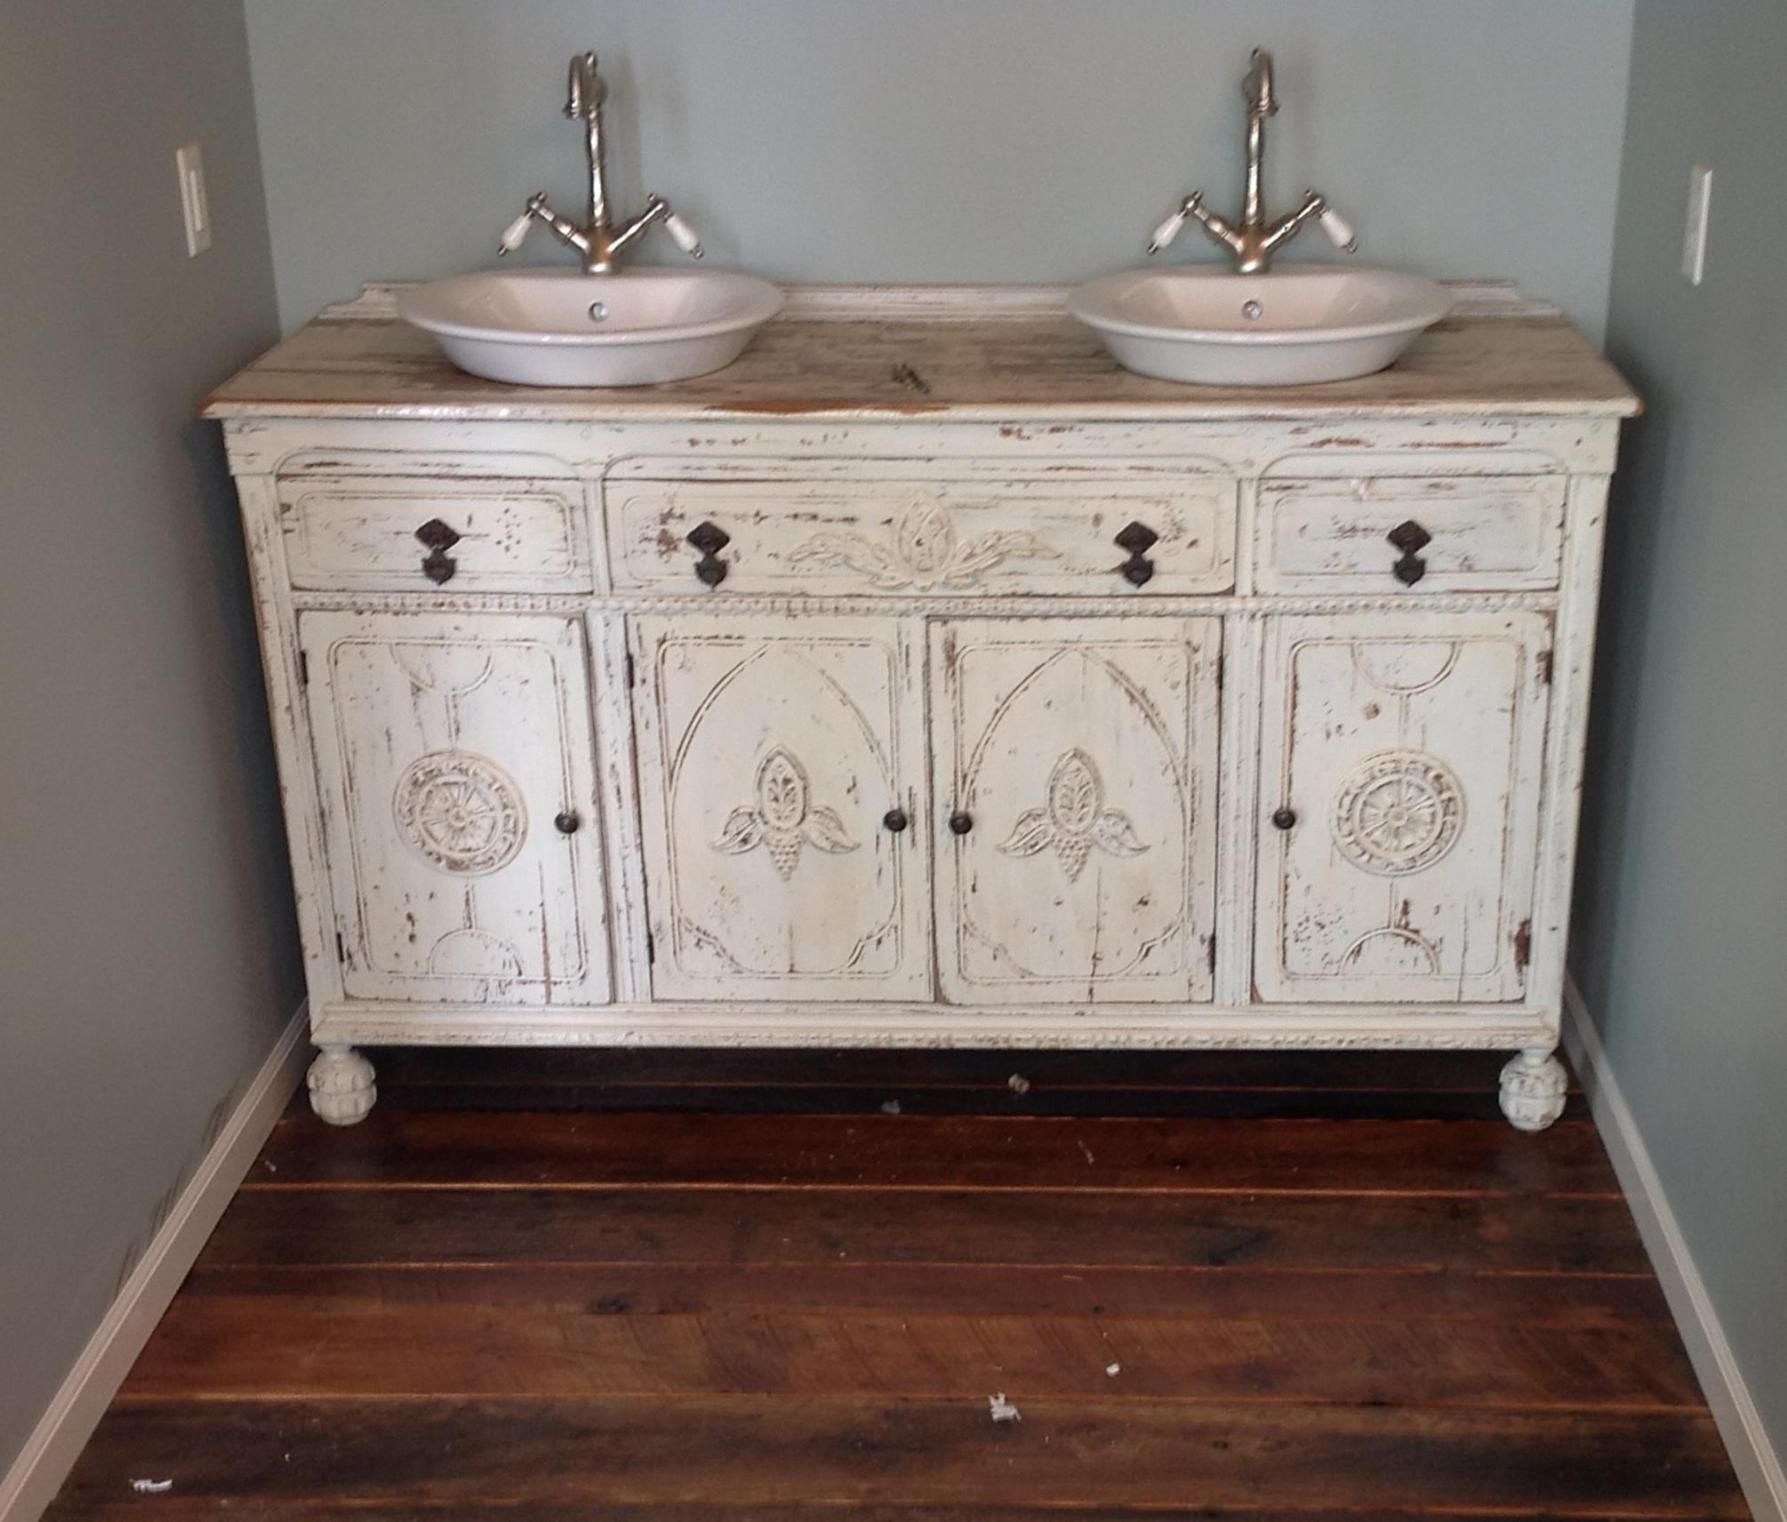 37 Charming Shabby Chic Bathroom Vanity Ideas Shabby Chic Bathroom Vanity Shabby Chic Bathroom Shabby Chic Room